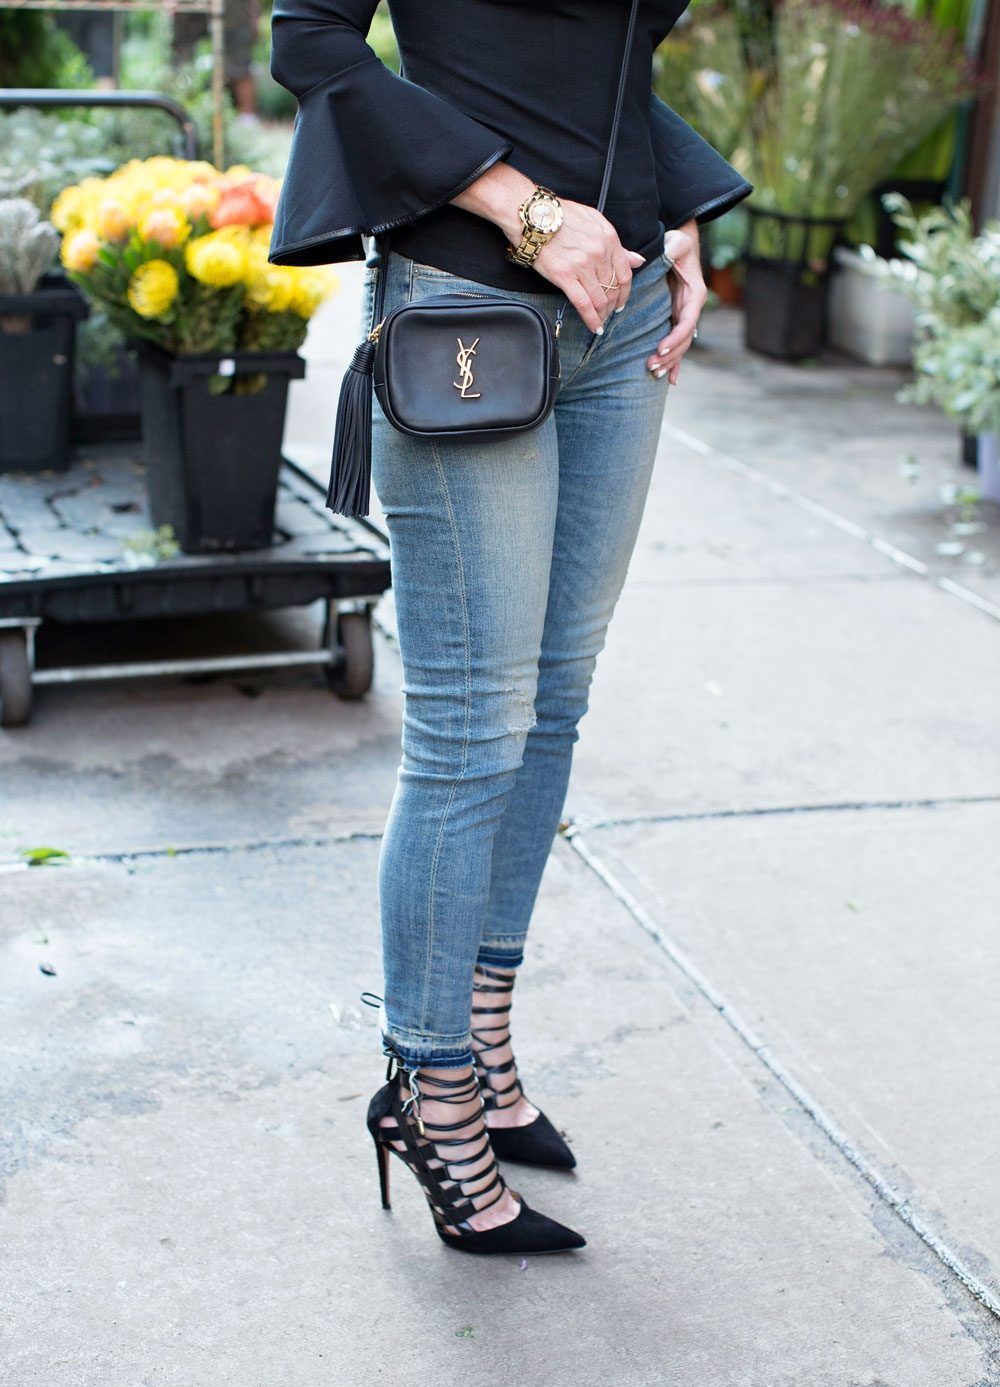 YSL Blogger Bag In Black With A Tassel Love This For